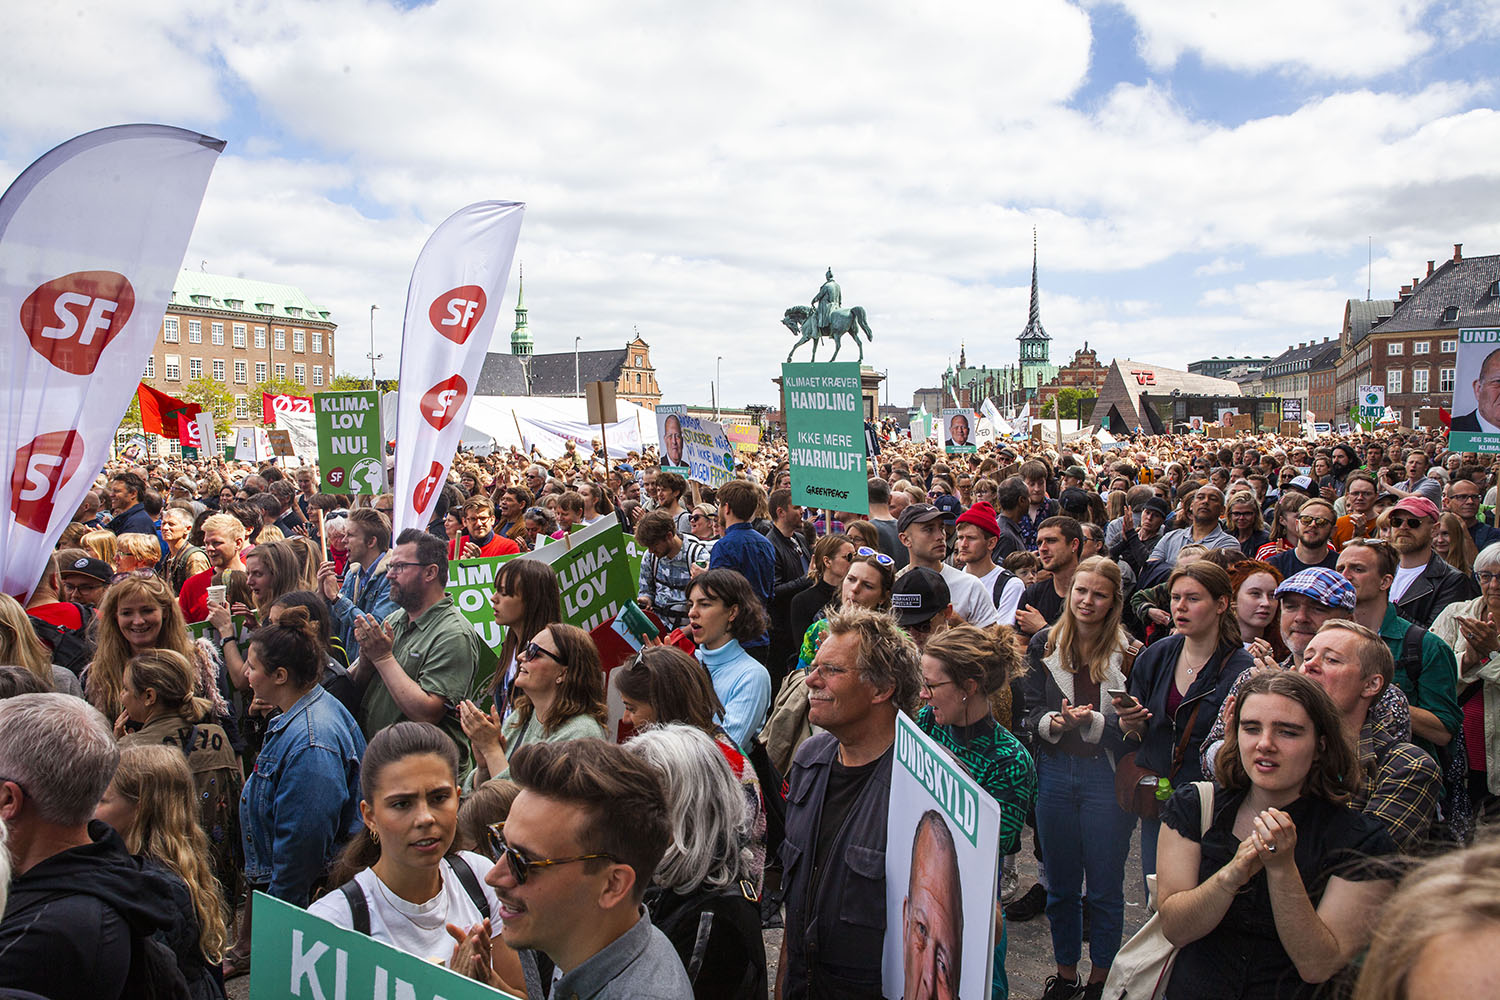 Klimamarch2019_HelenaLundquist_MG_8885_62.